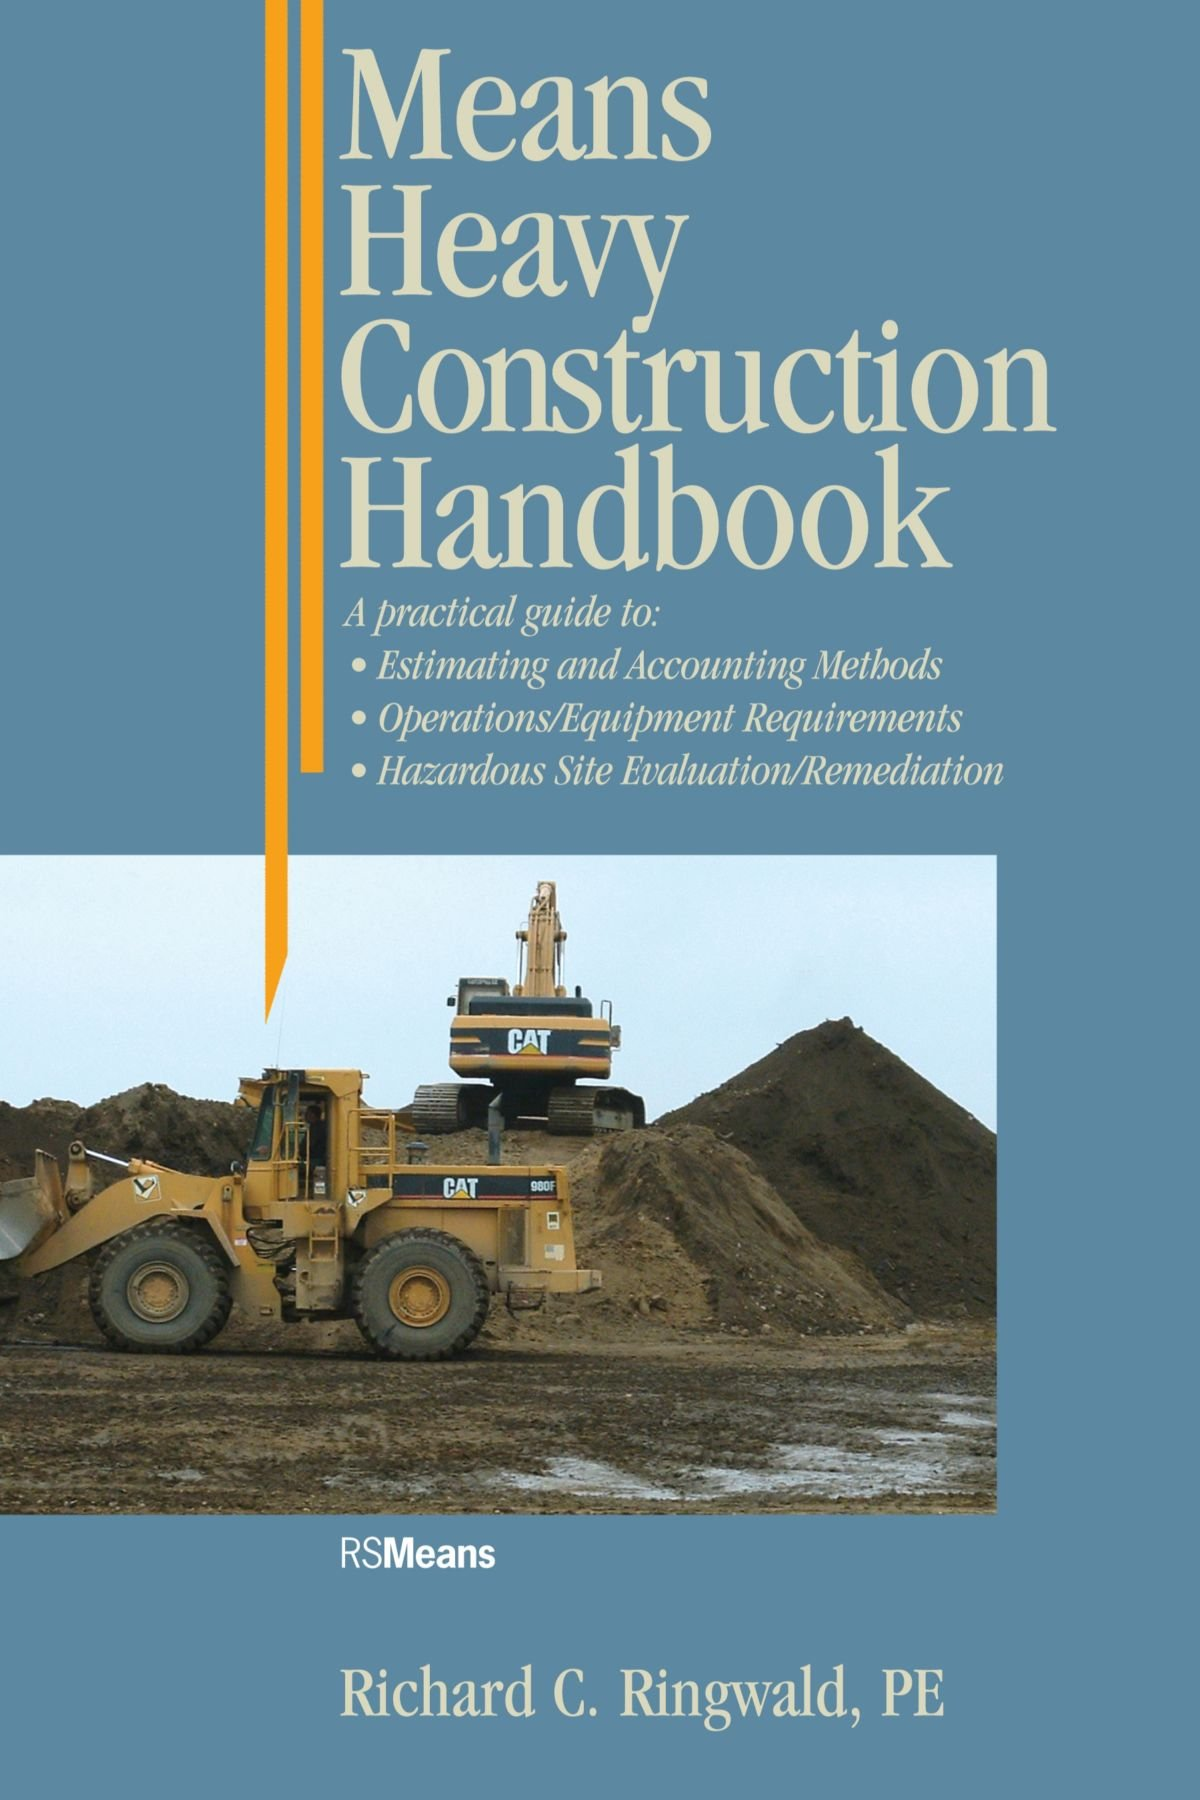 Means Heavy Construction Handbook: A Practical Guide to Estimating ...